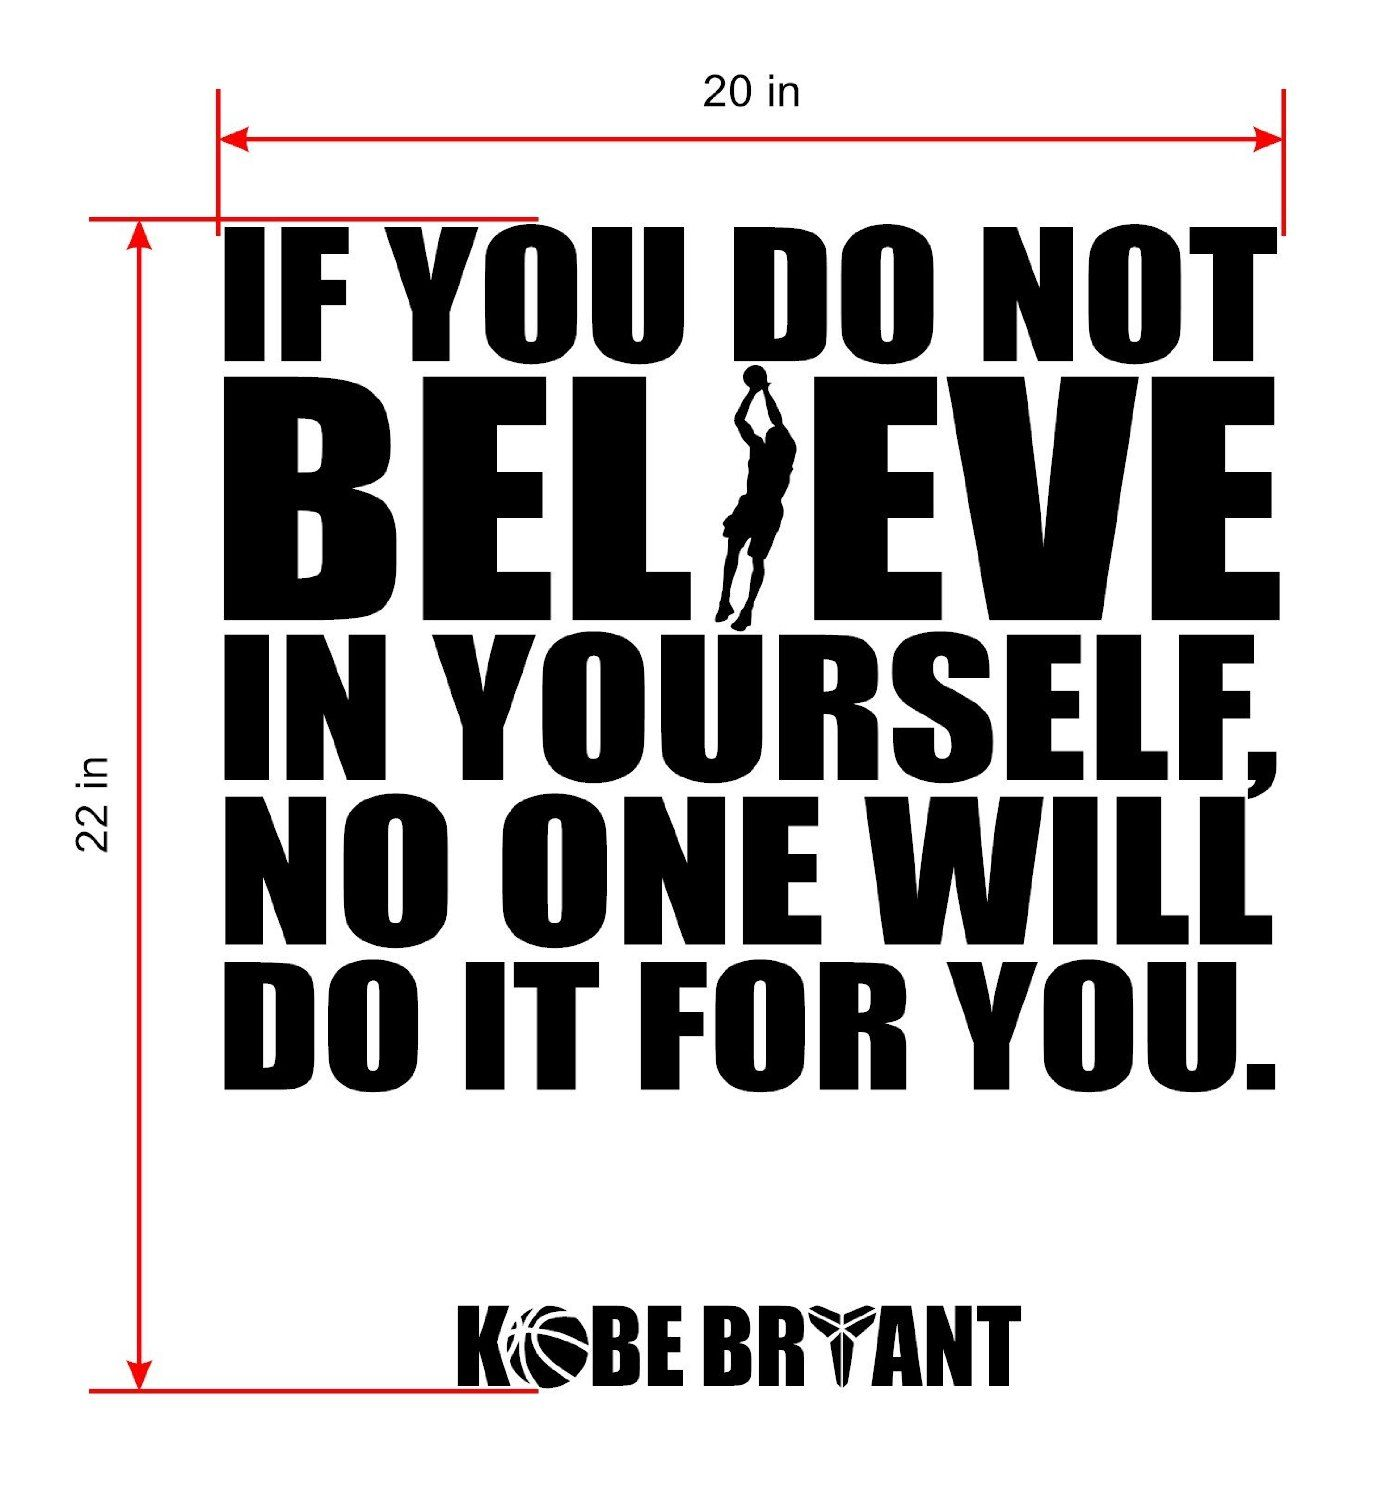 amazon com kobe bryant inspirational quotes wall decor kobe bryant inspirational quotes wall decor basketball wall decals by walldecalsandart inspiring sports nba players wall art decals best quotes designer